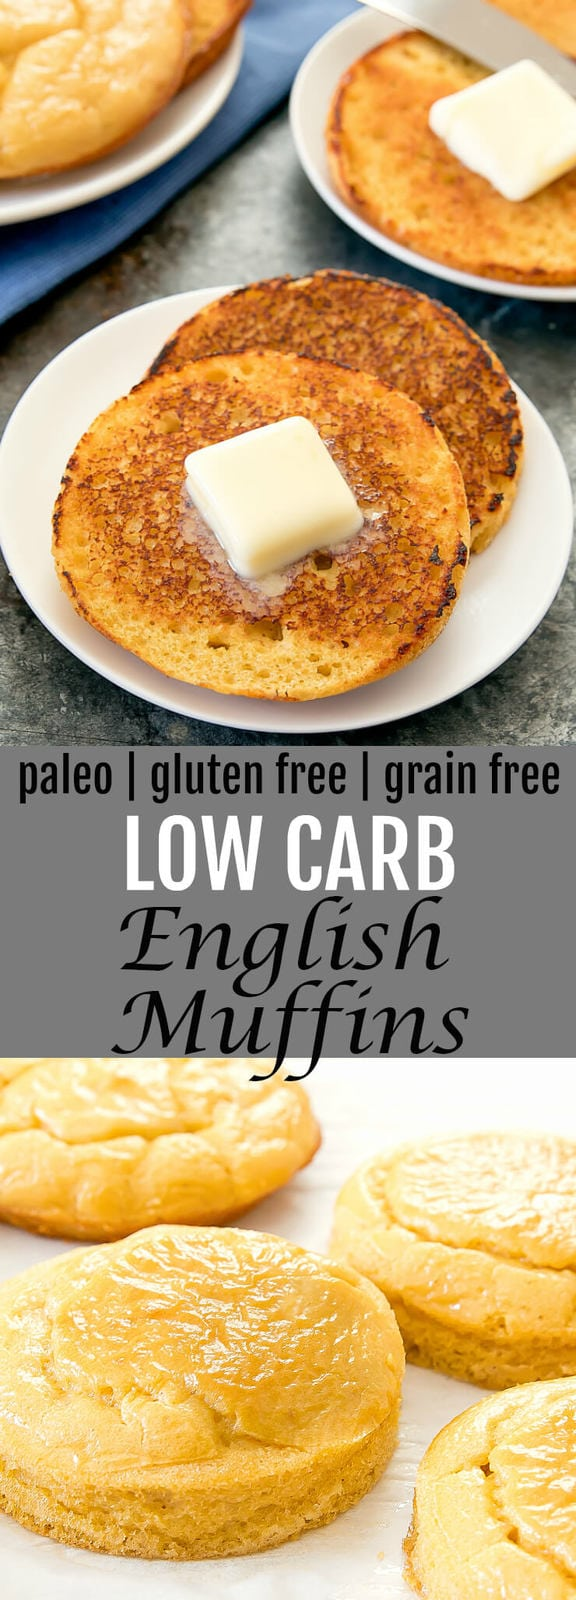 Low Carb English Muffins. An easy one bowl recipe that makes fluffy low carb paleo and gluten free breads that are a great alternative to toasted English muffins